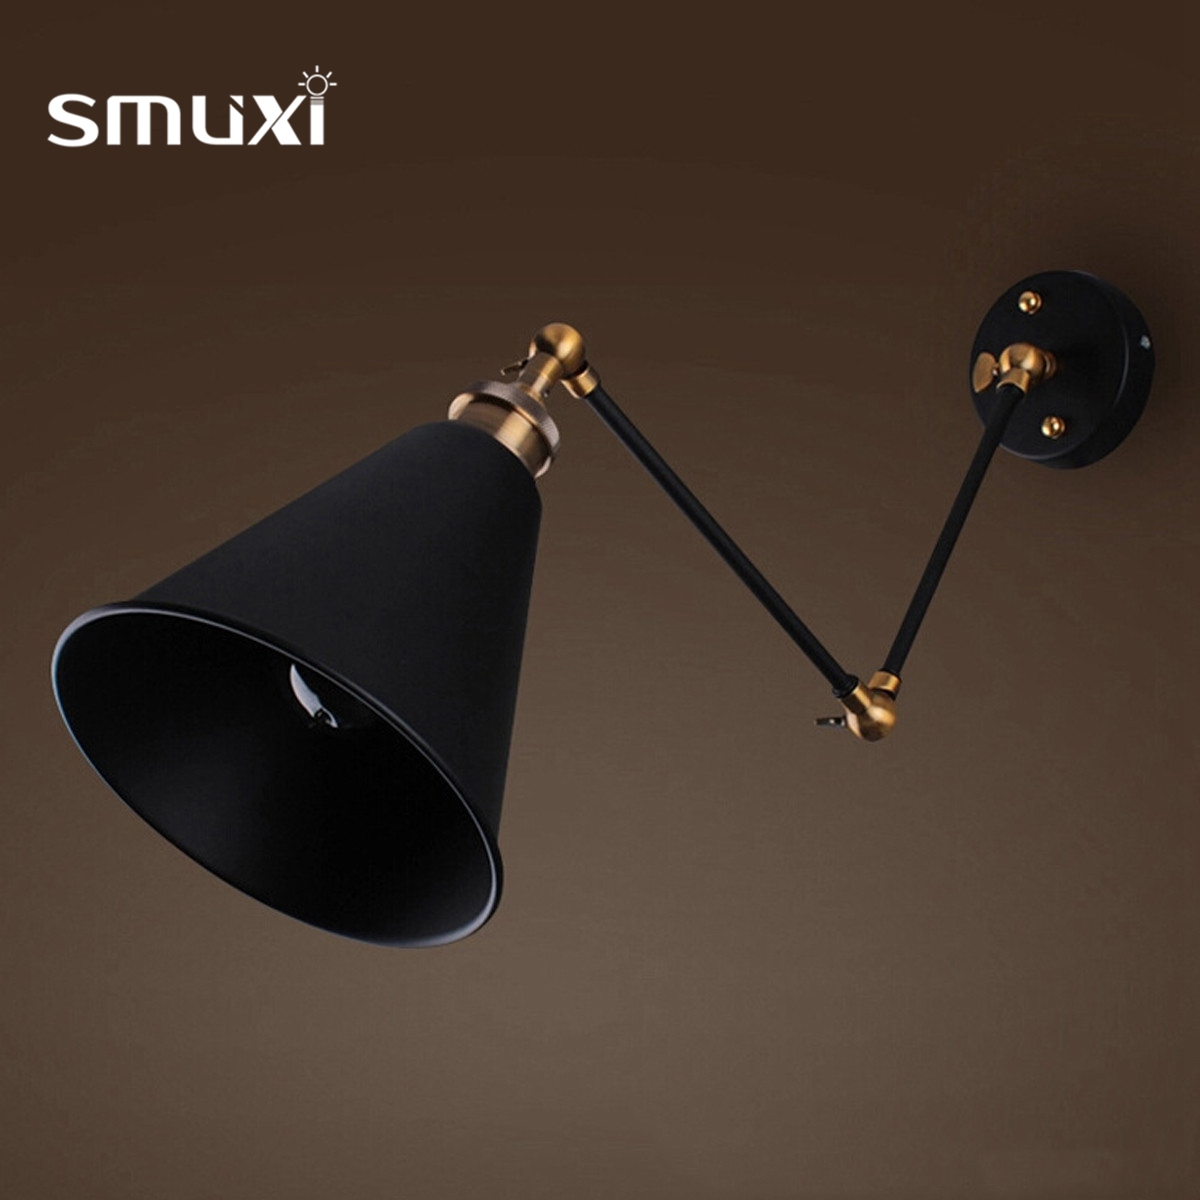 Smuxi Black Retro Ives Swan Neck Galvanised Steel Barn Clay Wall Lamp Fittings Lights Home Decoration Wall LampsSmuxi Black Retro Ives Swan Neck Galvanised Steel Barn Clay Wall Lamp Fittings Lights Home Decoration Wall Lamps